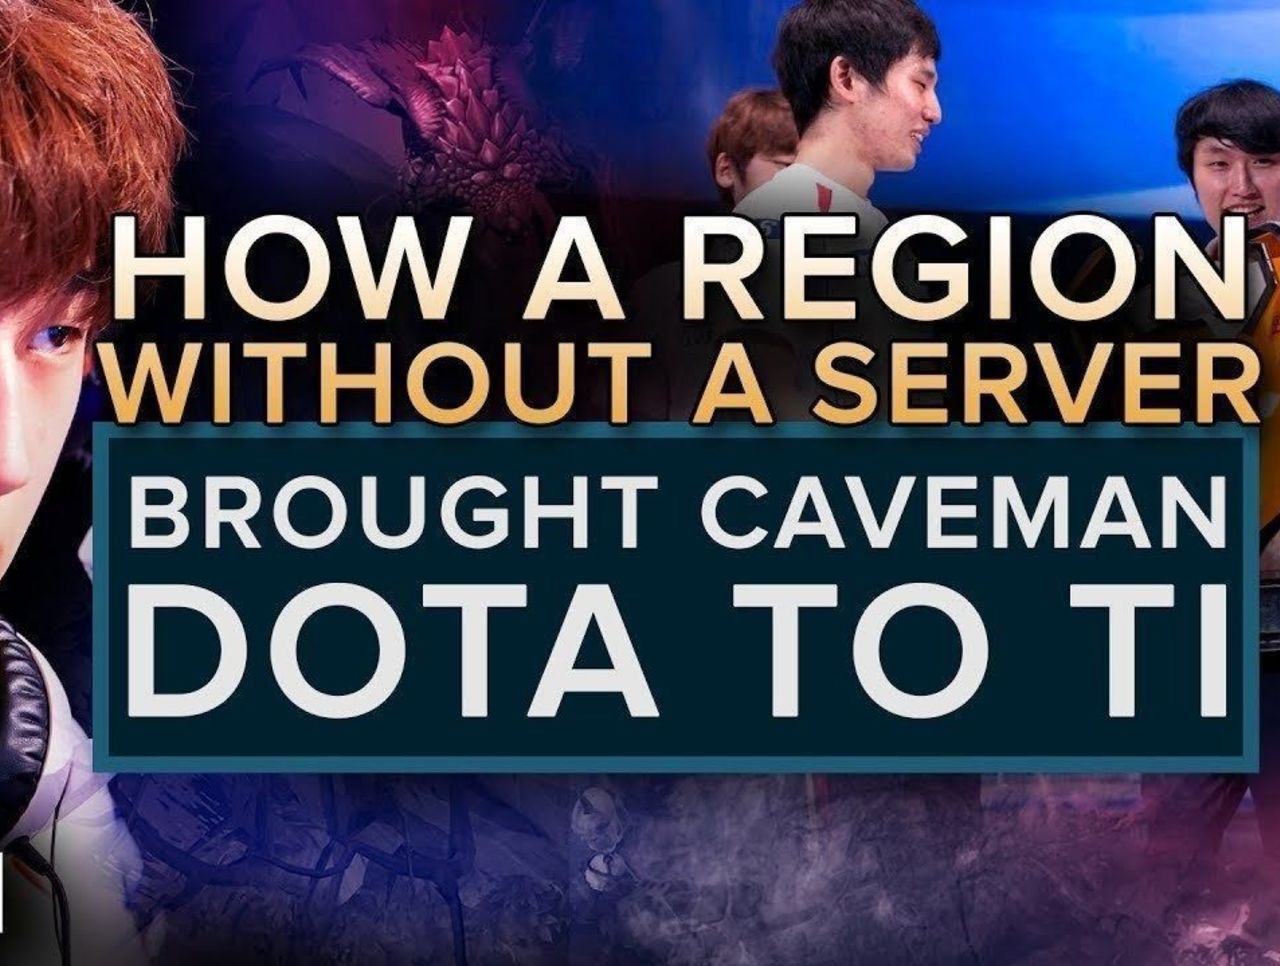 How a region without a server brought Caveman Dota to The International